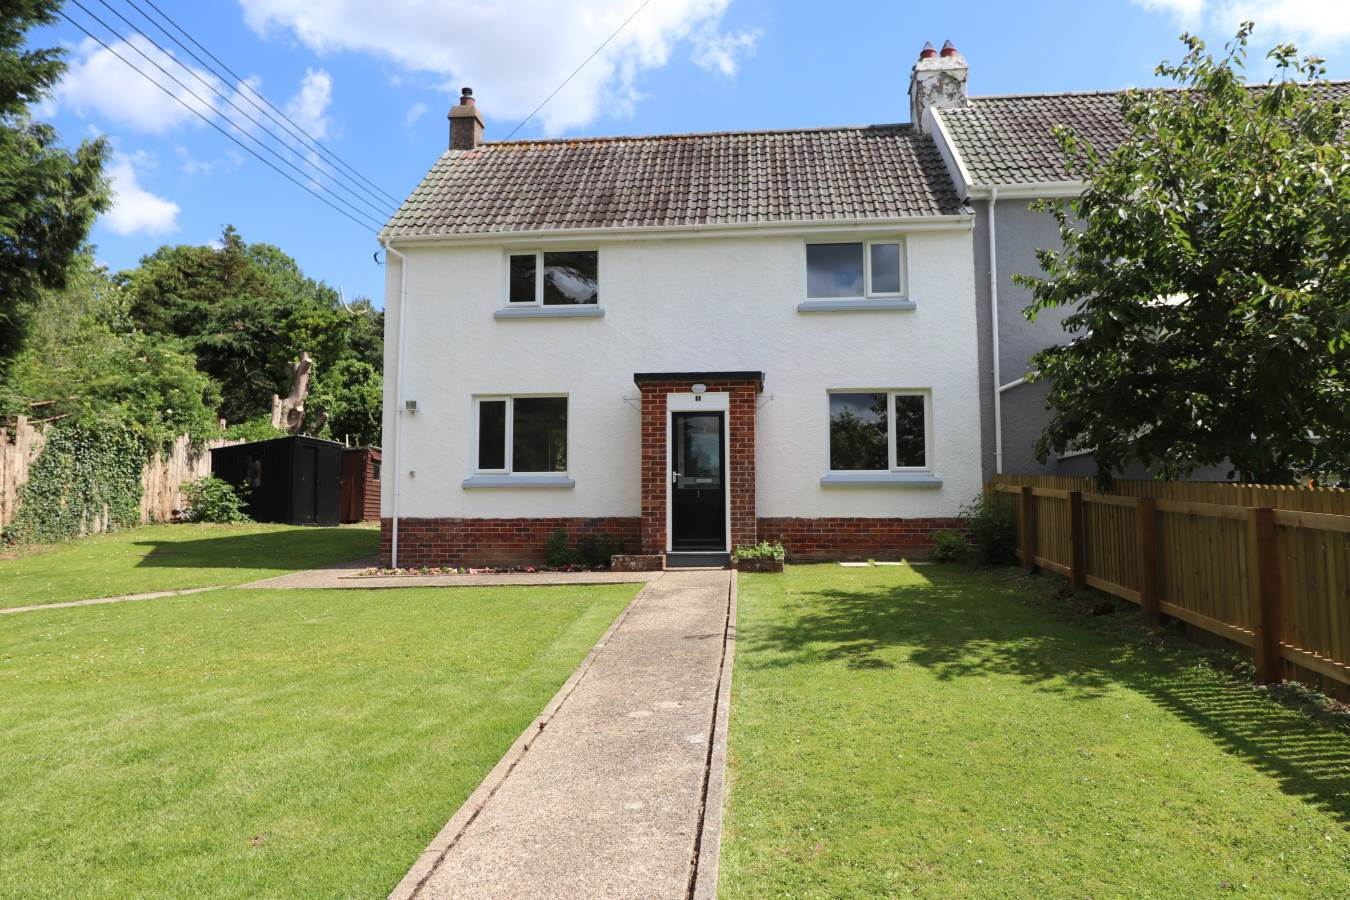 Surprising 3 Bedroom Property For Sale In Bishops Tawton North Devon Beutiful Home Inspiration Aditmahrainfo